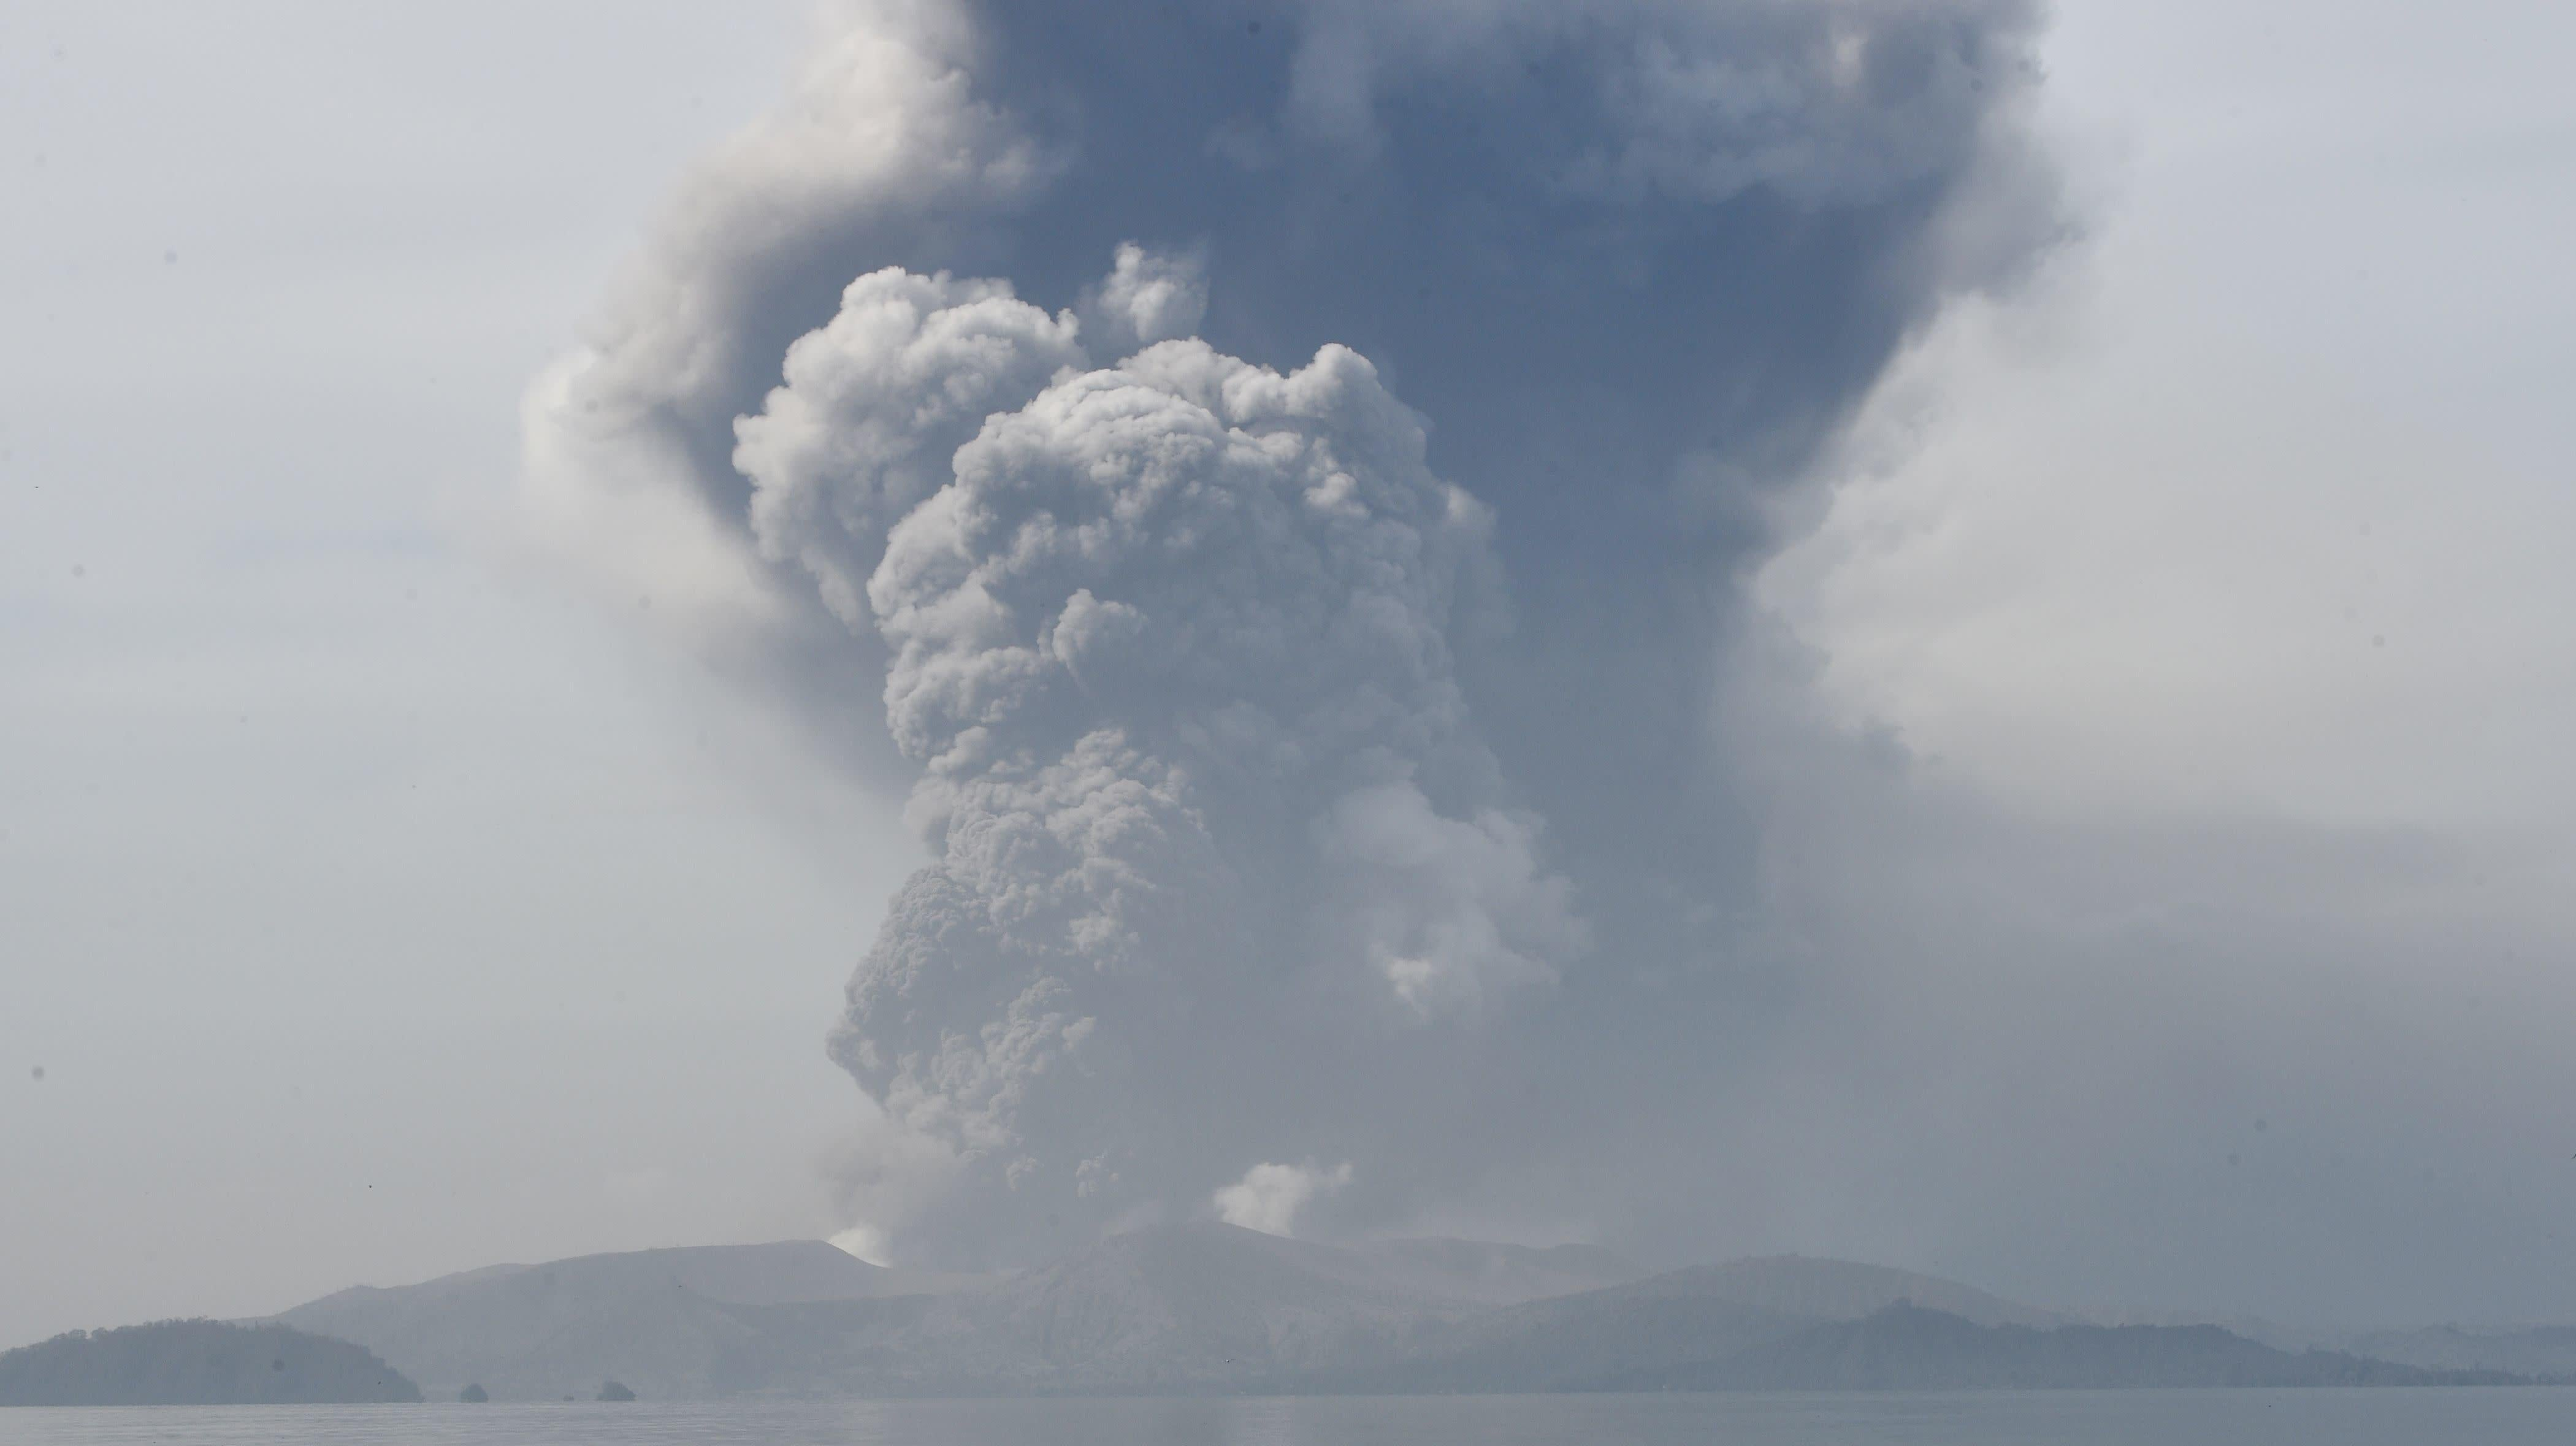 A Volcano Is Erupting In The Philippines, Forcing Tens Of Thousands To Flee